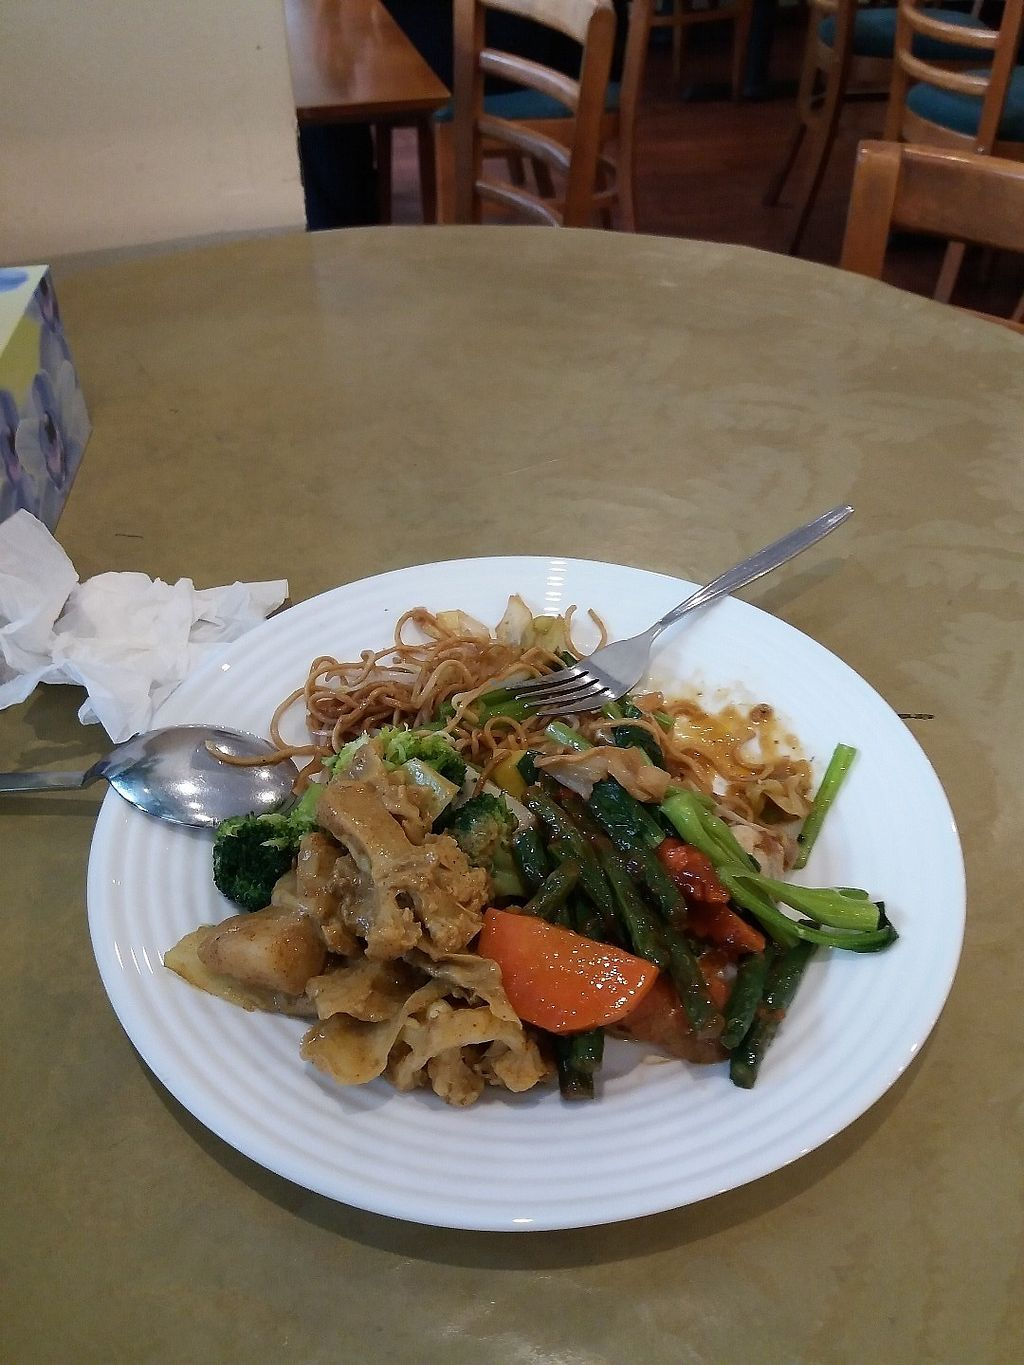 "Photo of Green Gourmet  by <a href=""/members/profile/veganvirtues"">veganvirtues</a> <br/>Selection from buffet <br/> June 16, 2017  - <a href='/contact/abuse/image/482/269666'>Report</a>"